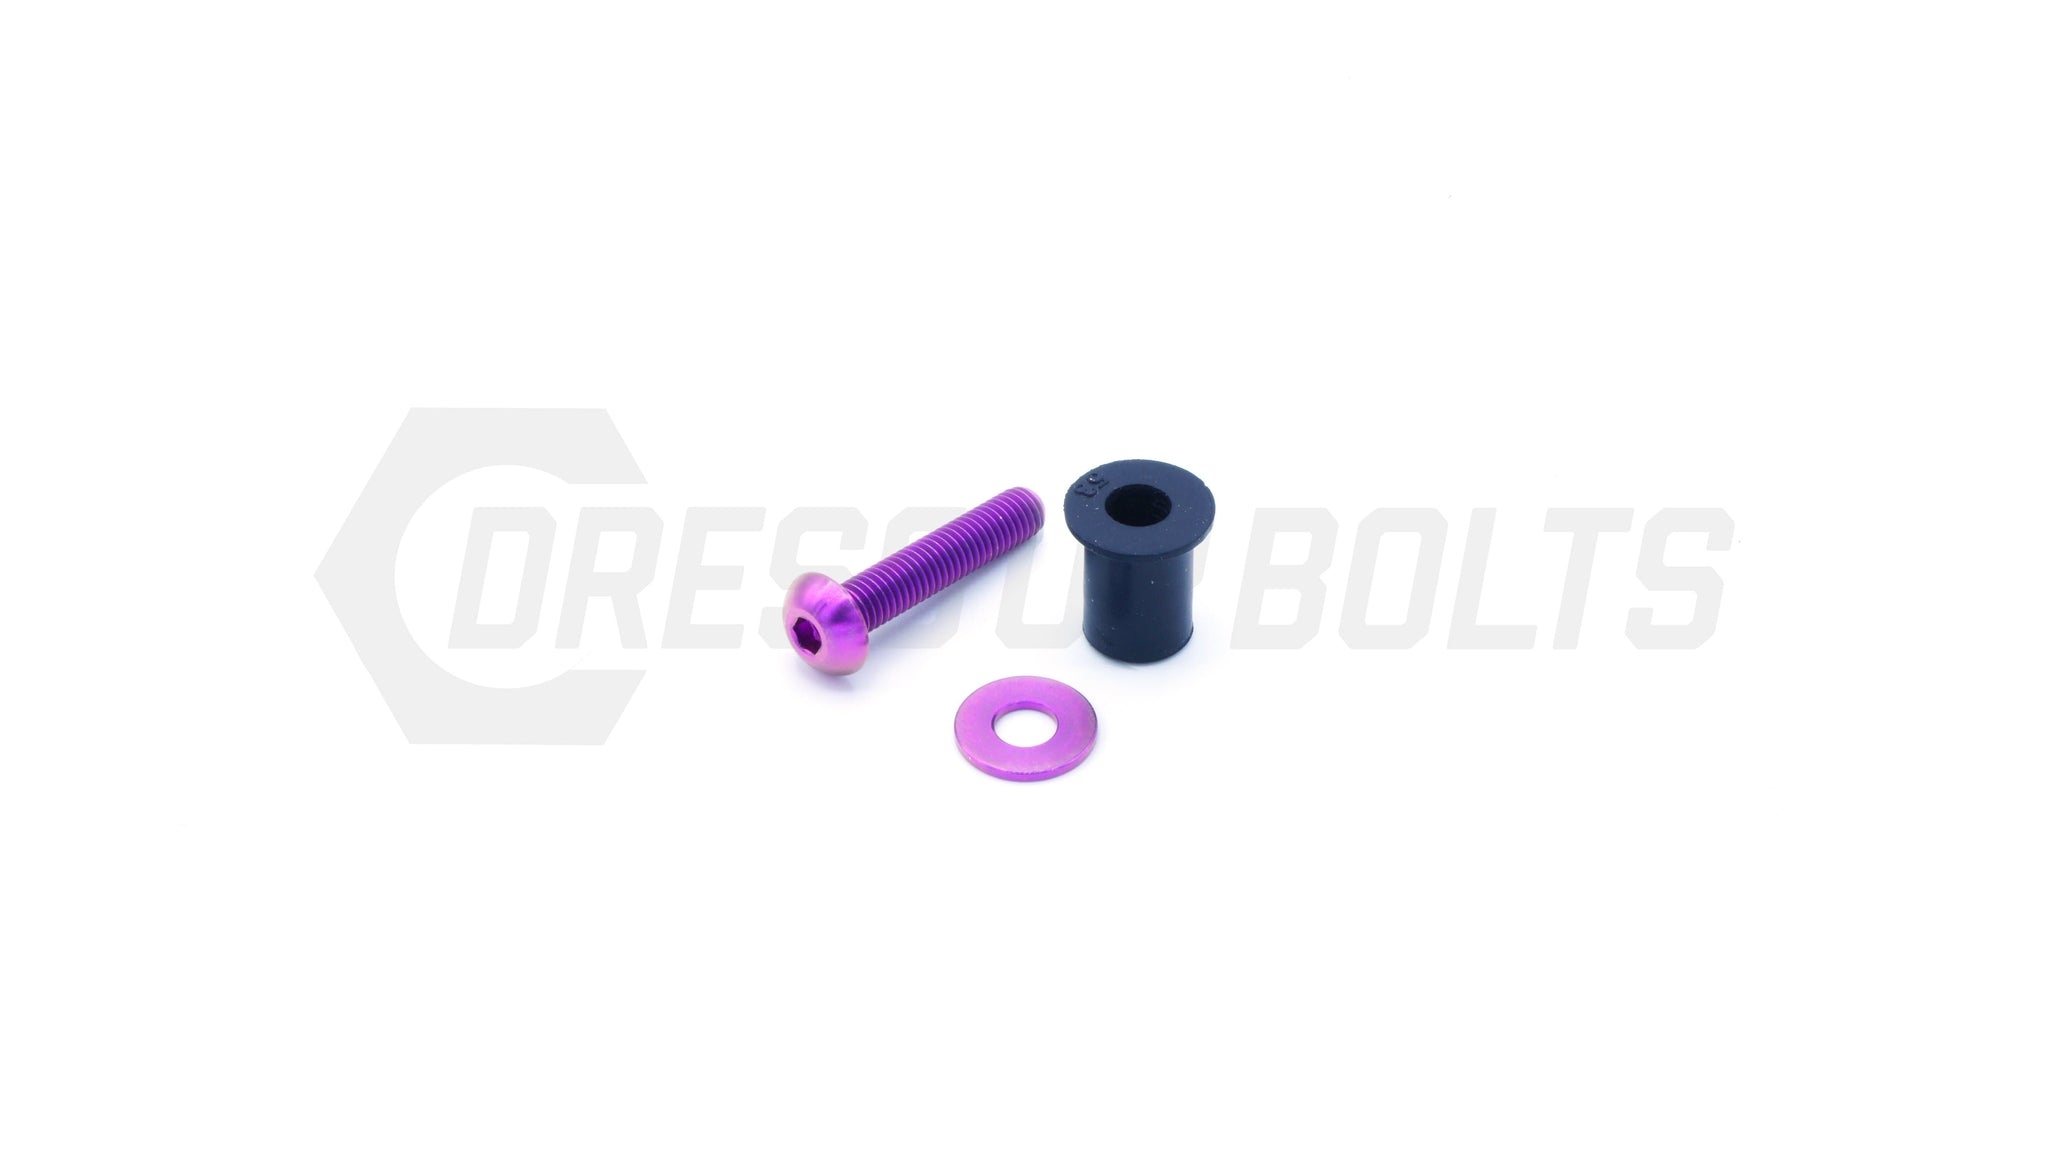 Dress Up Bolts Titanium Widebody Hardware - Combo 3 - DressUpBolts.com